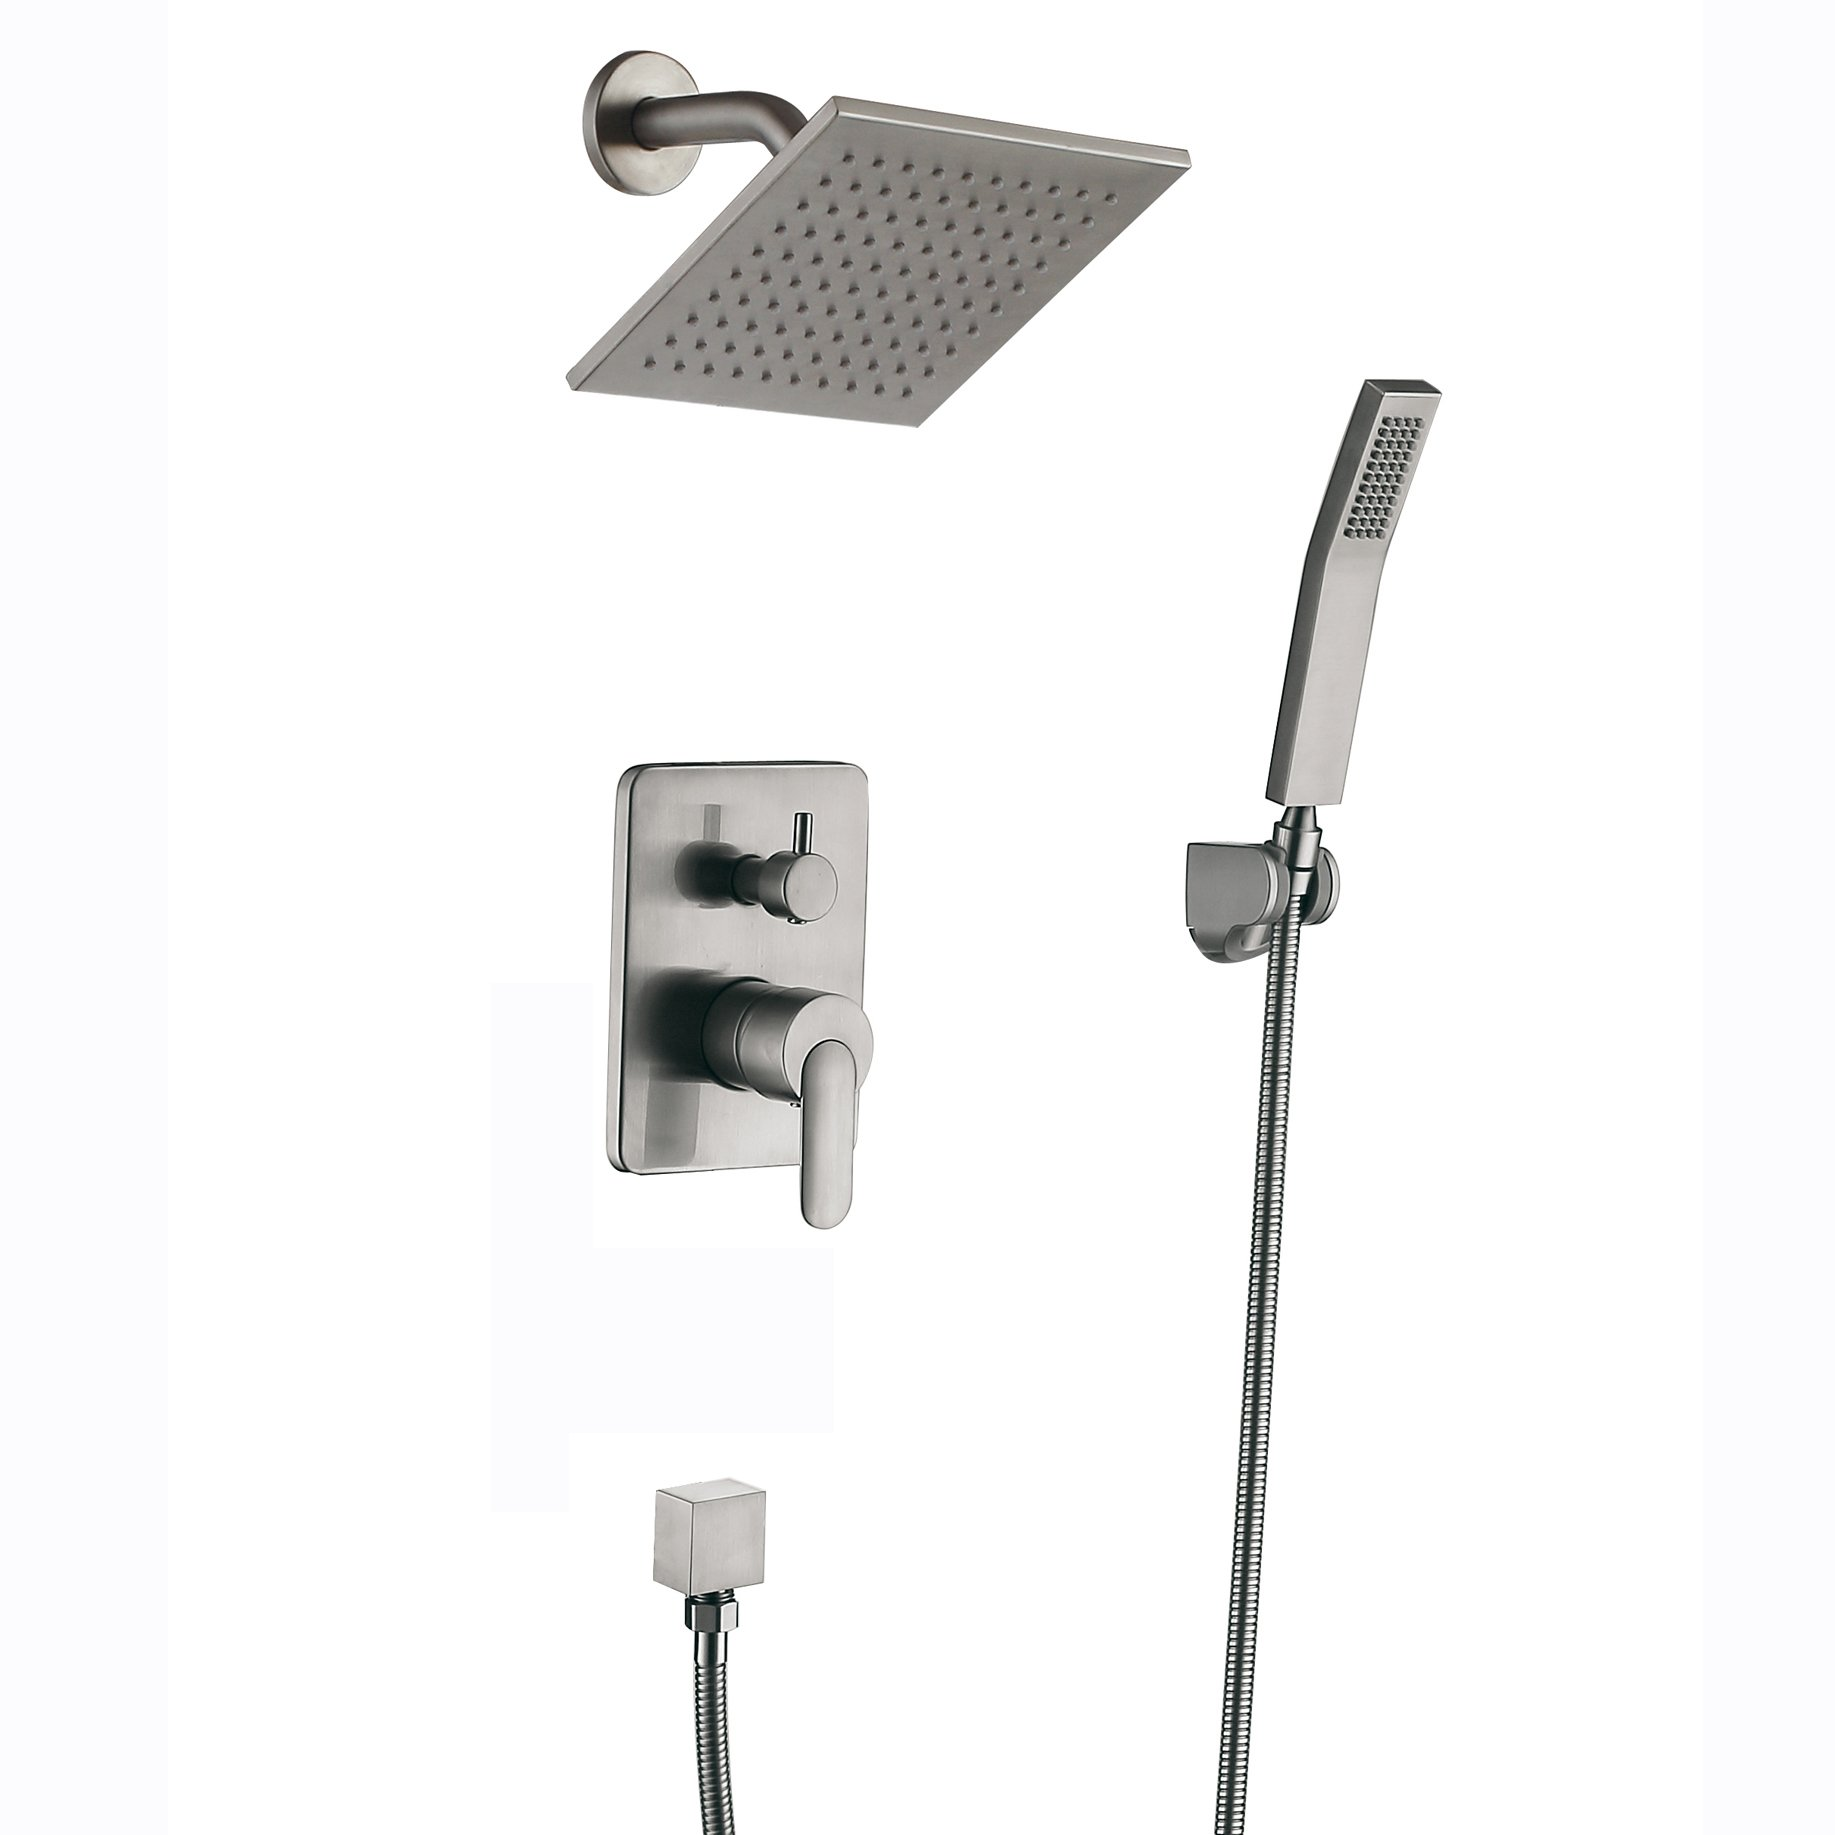 brushed shop com pin faucet bathtub with oxby at faucets rain shower showerhead resist and moen handle lowes nickel spot